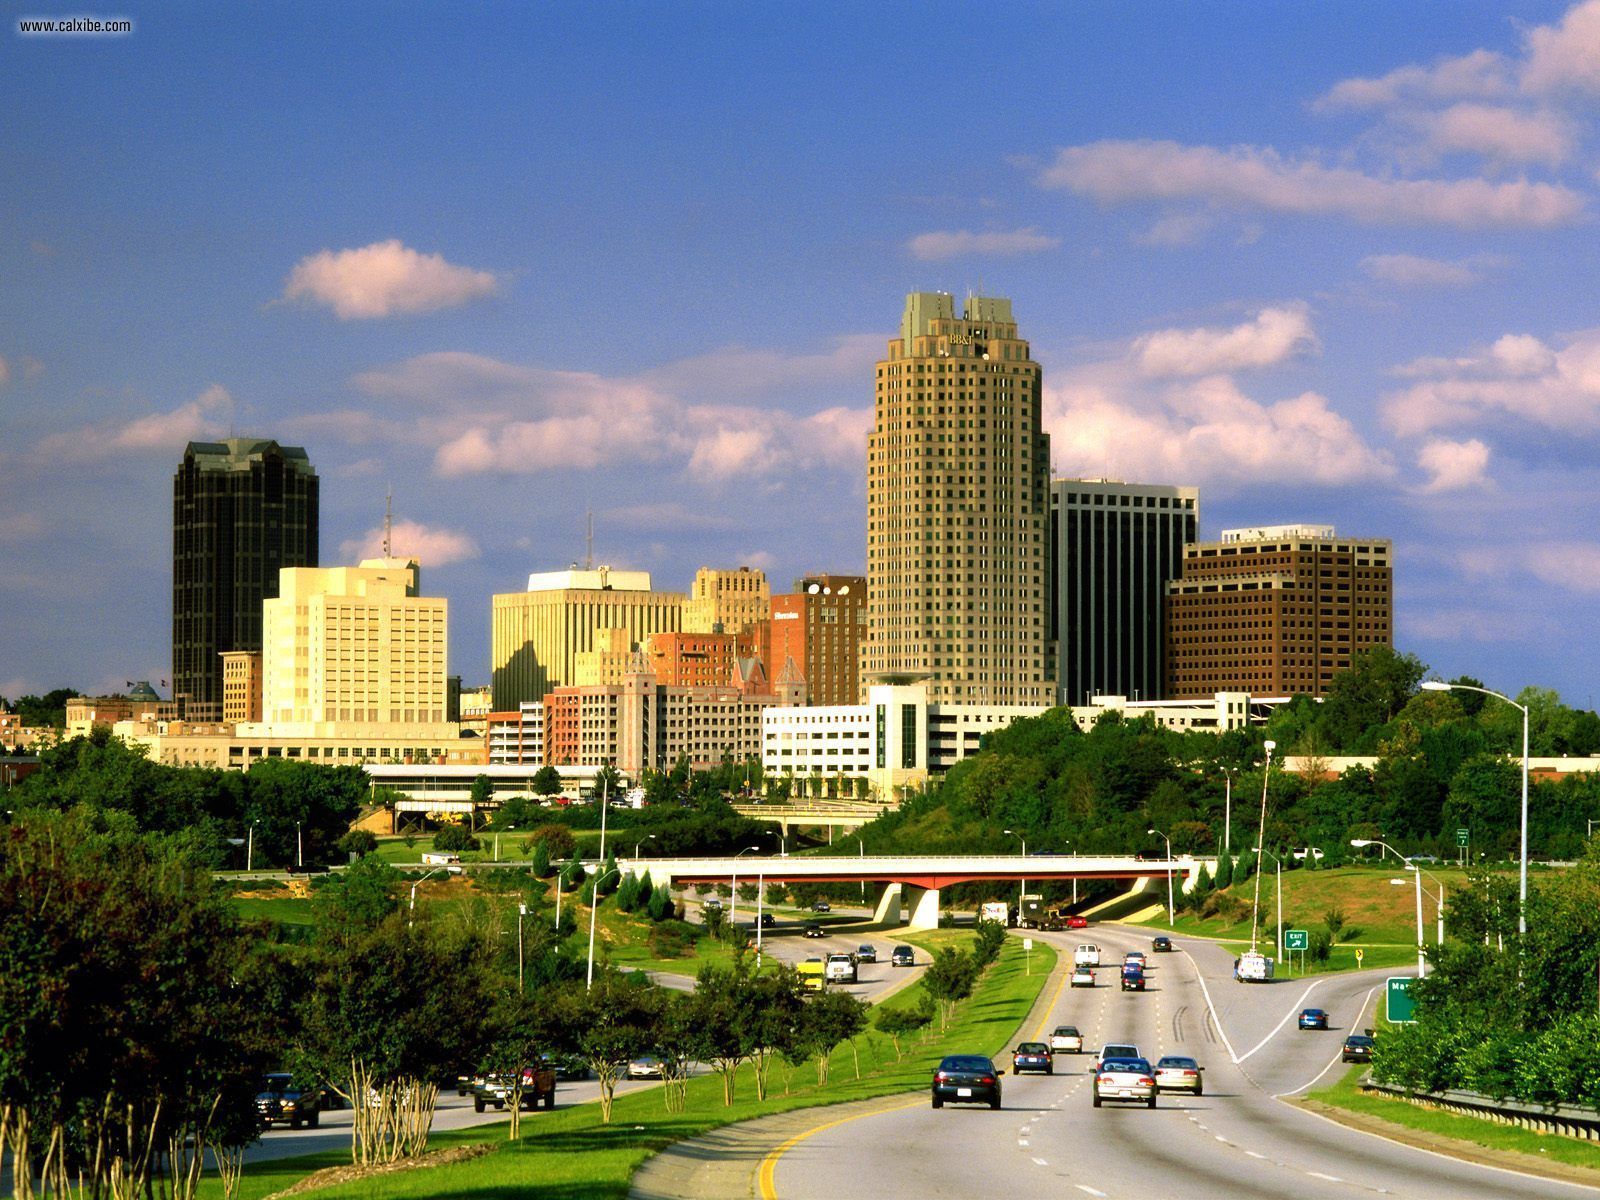 Here is Raleigh, North Carolina where we lived during the